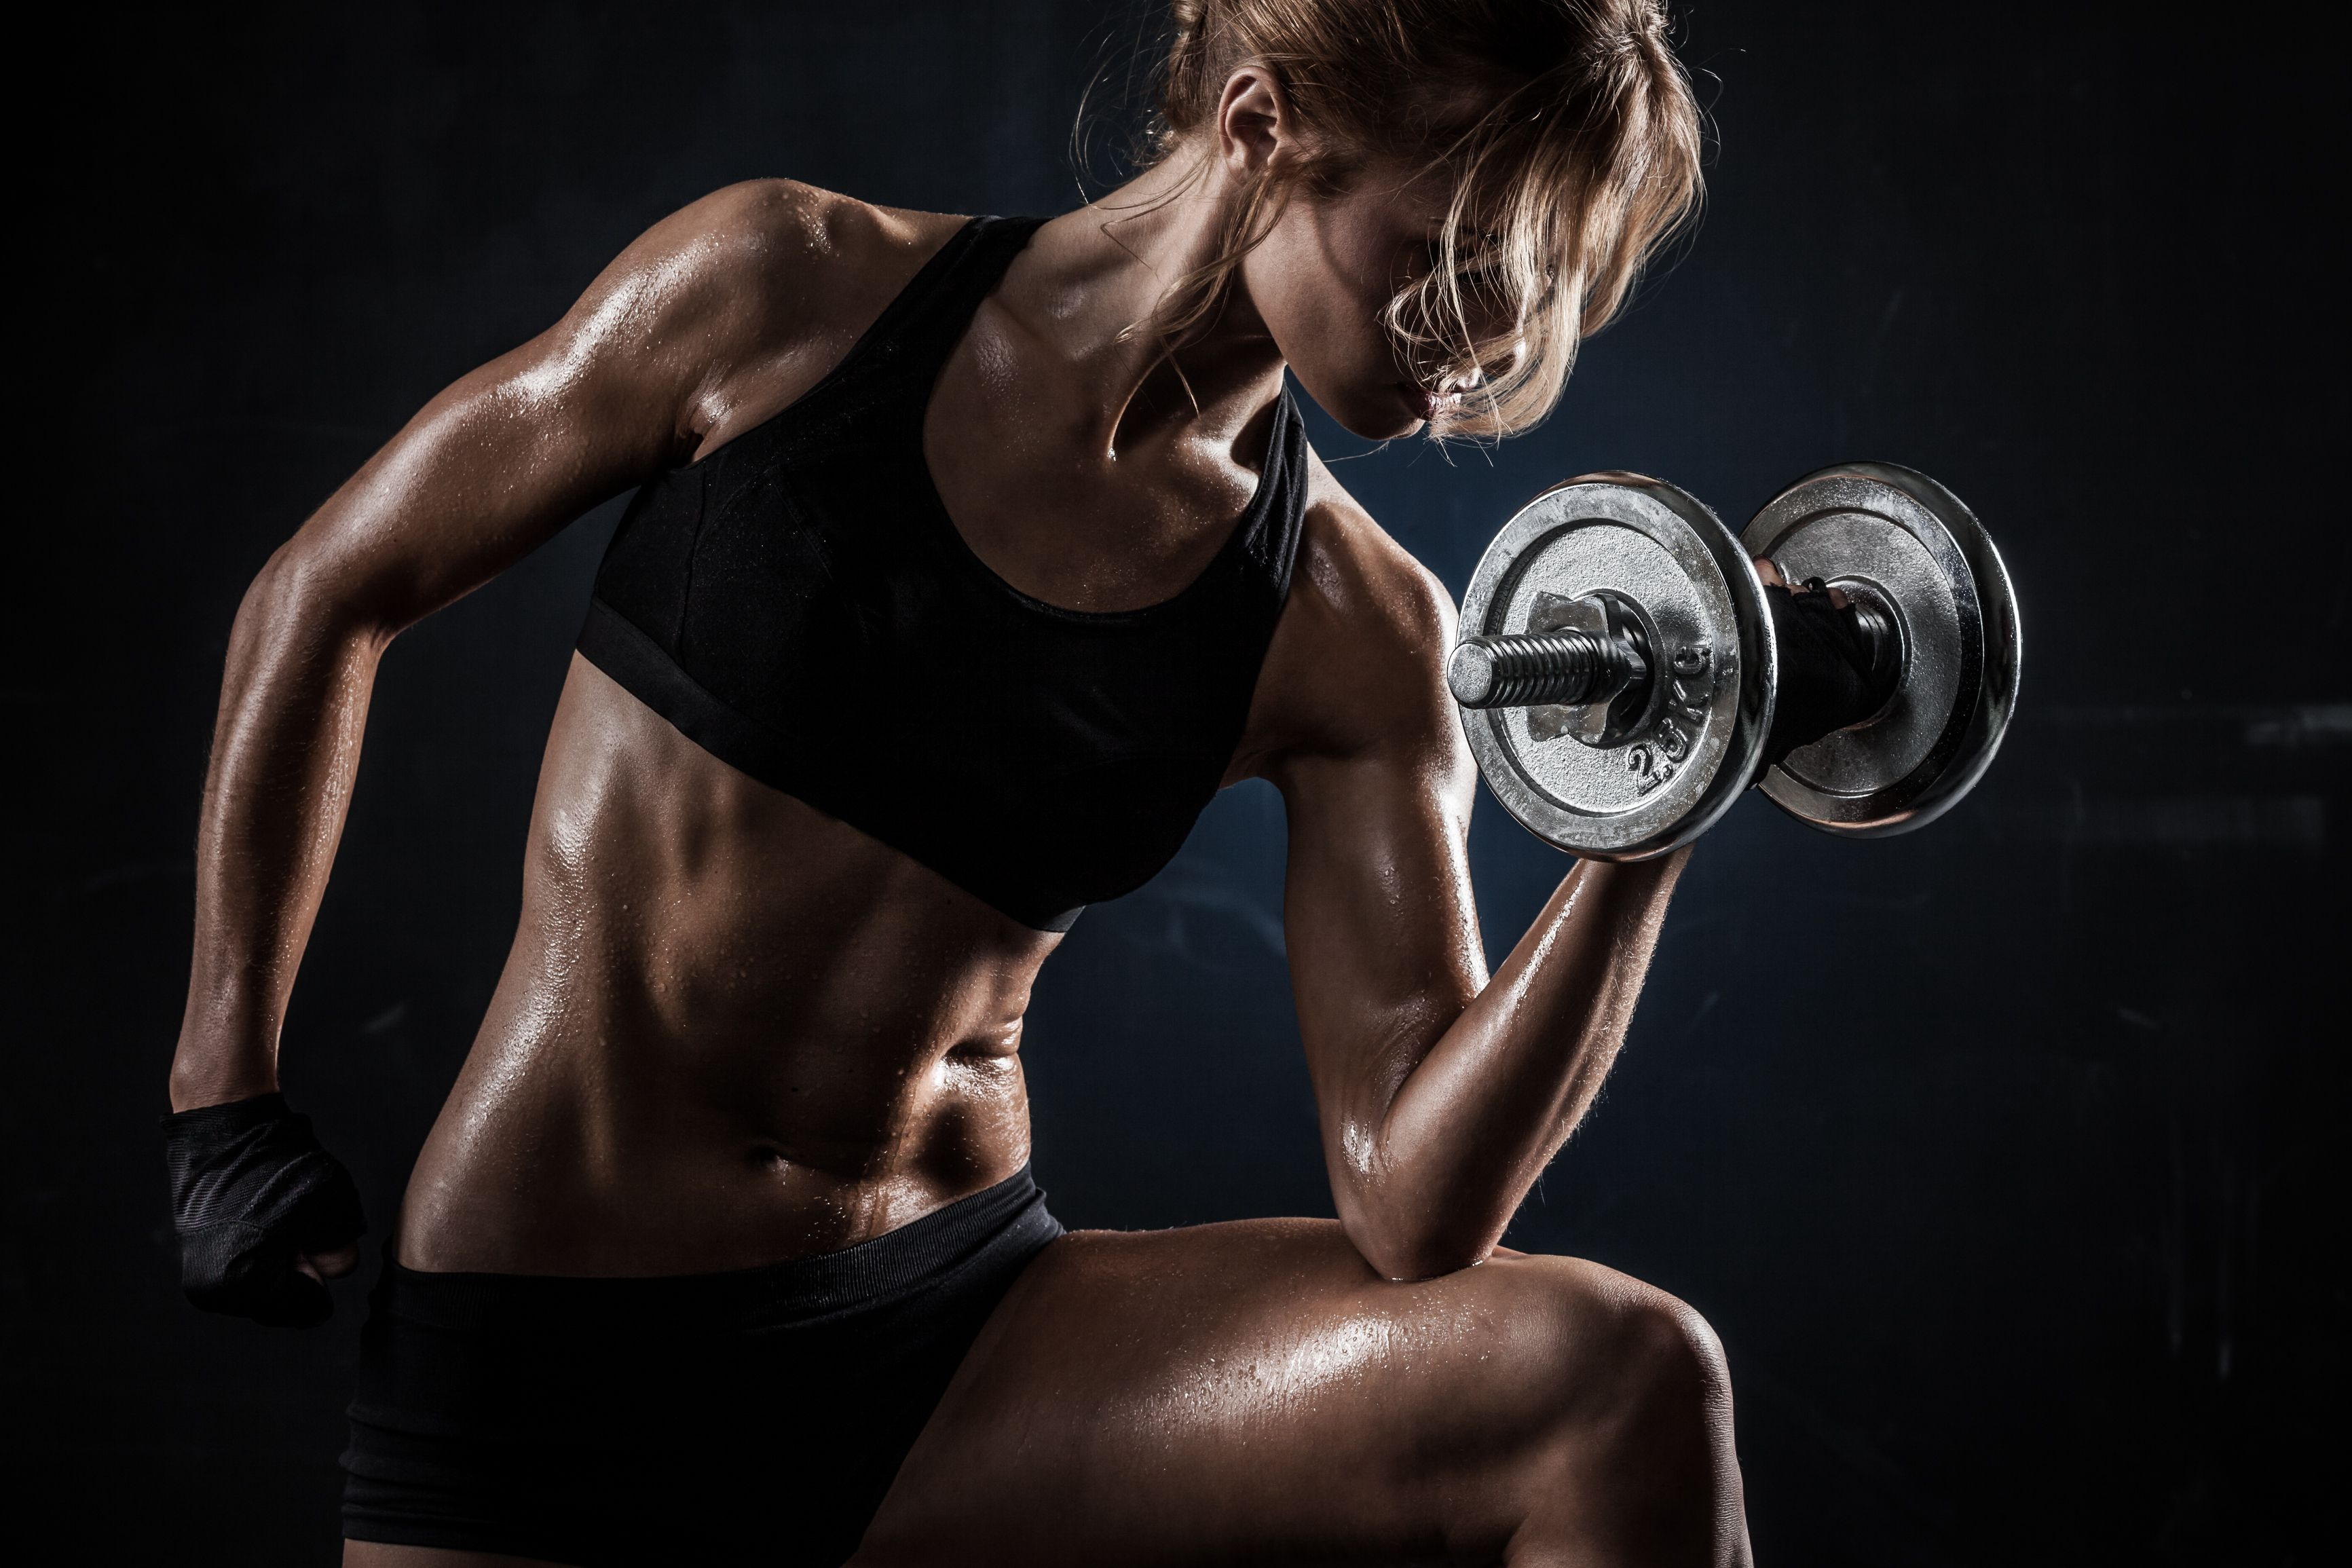 Fitness Girl Full HD Wallpapers and Backgrounds